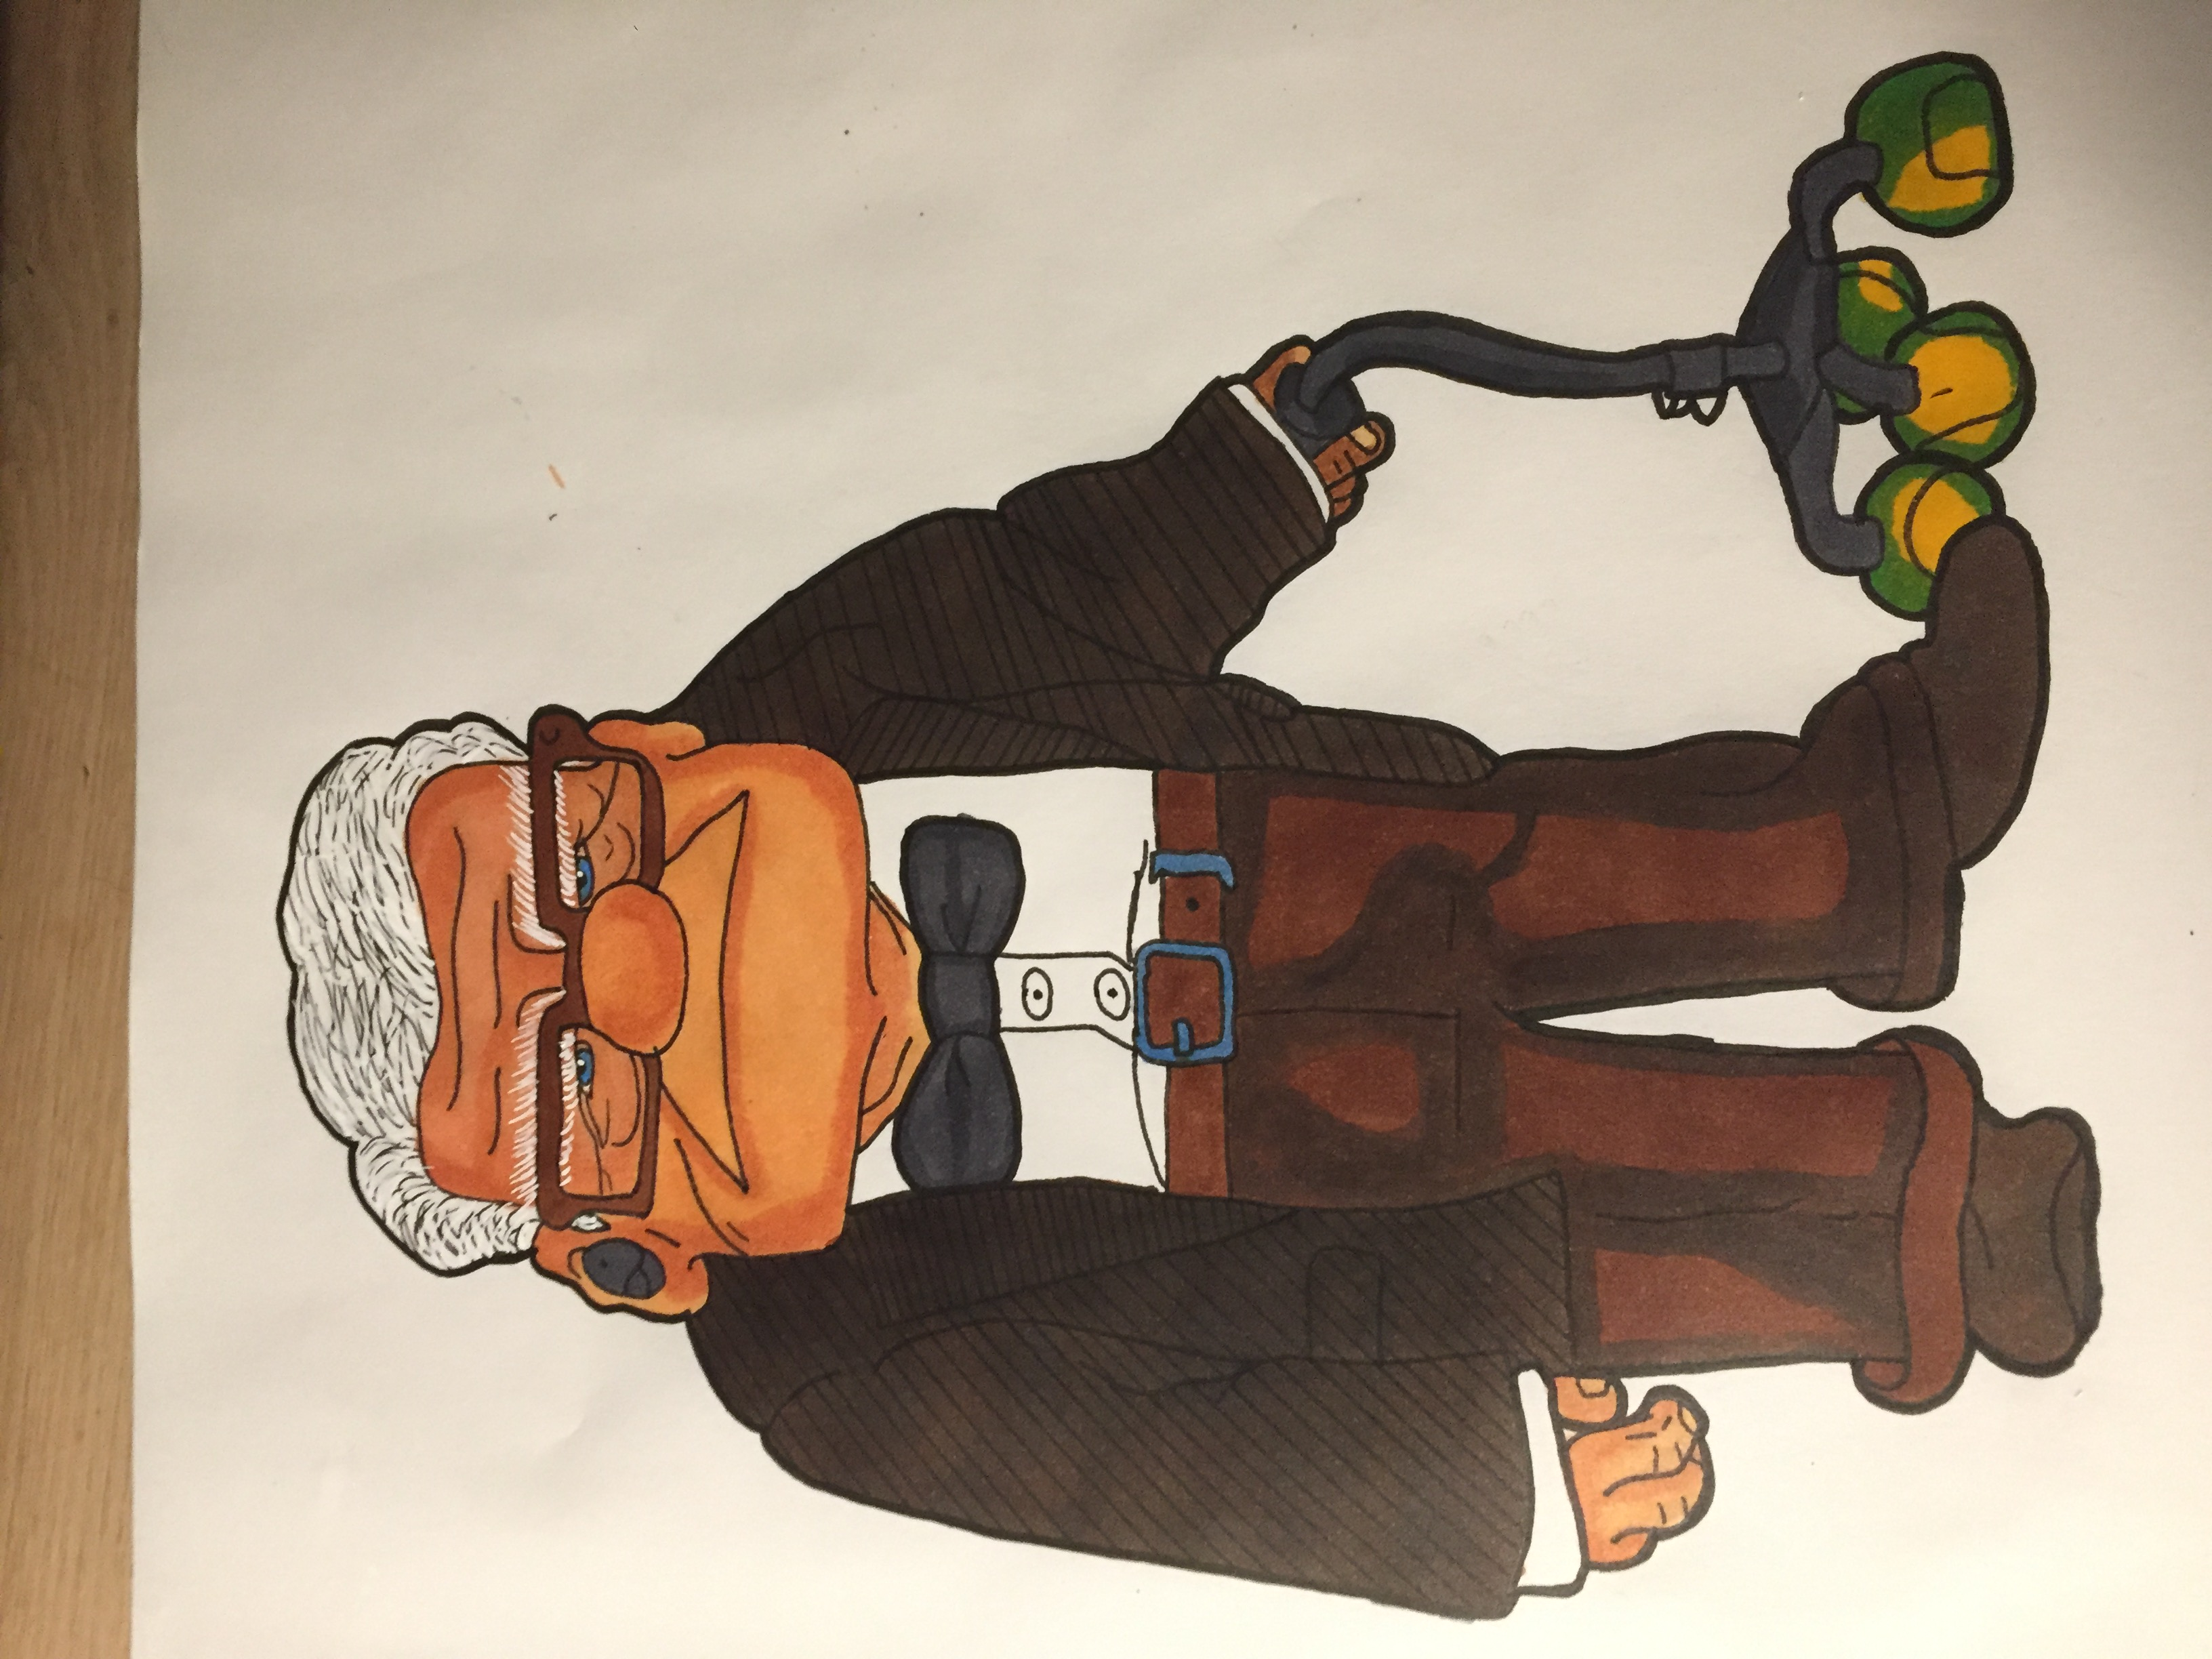 Carl F. from UP.